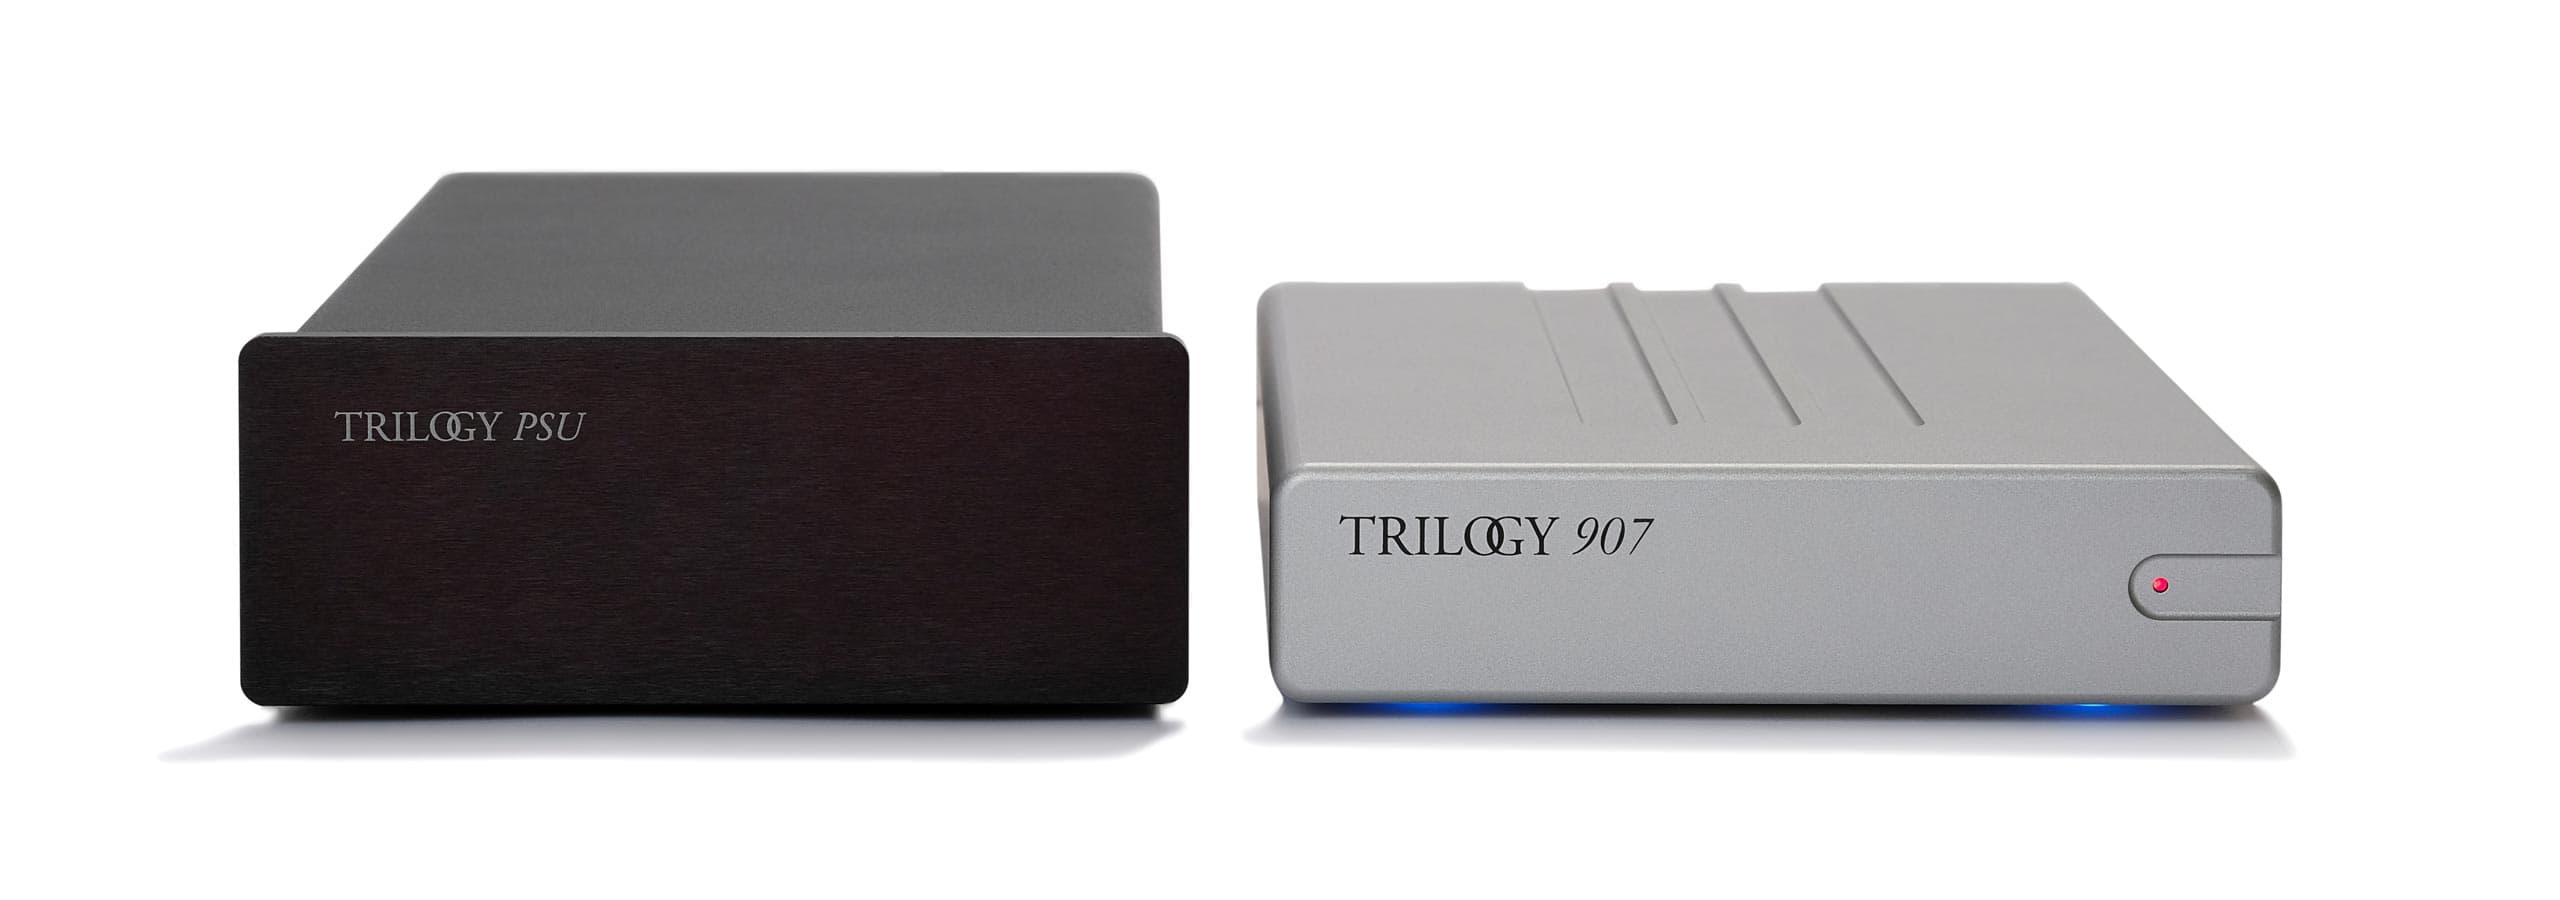 trilogy product detail